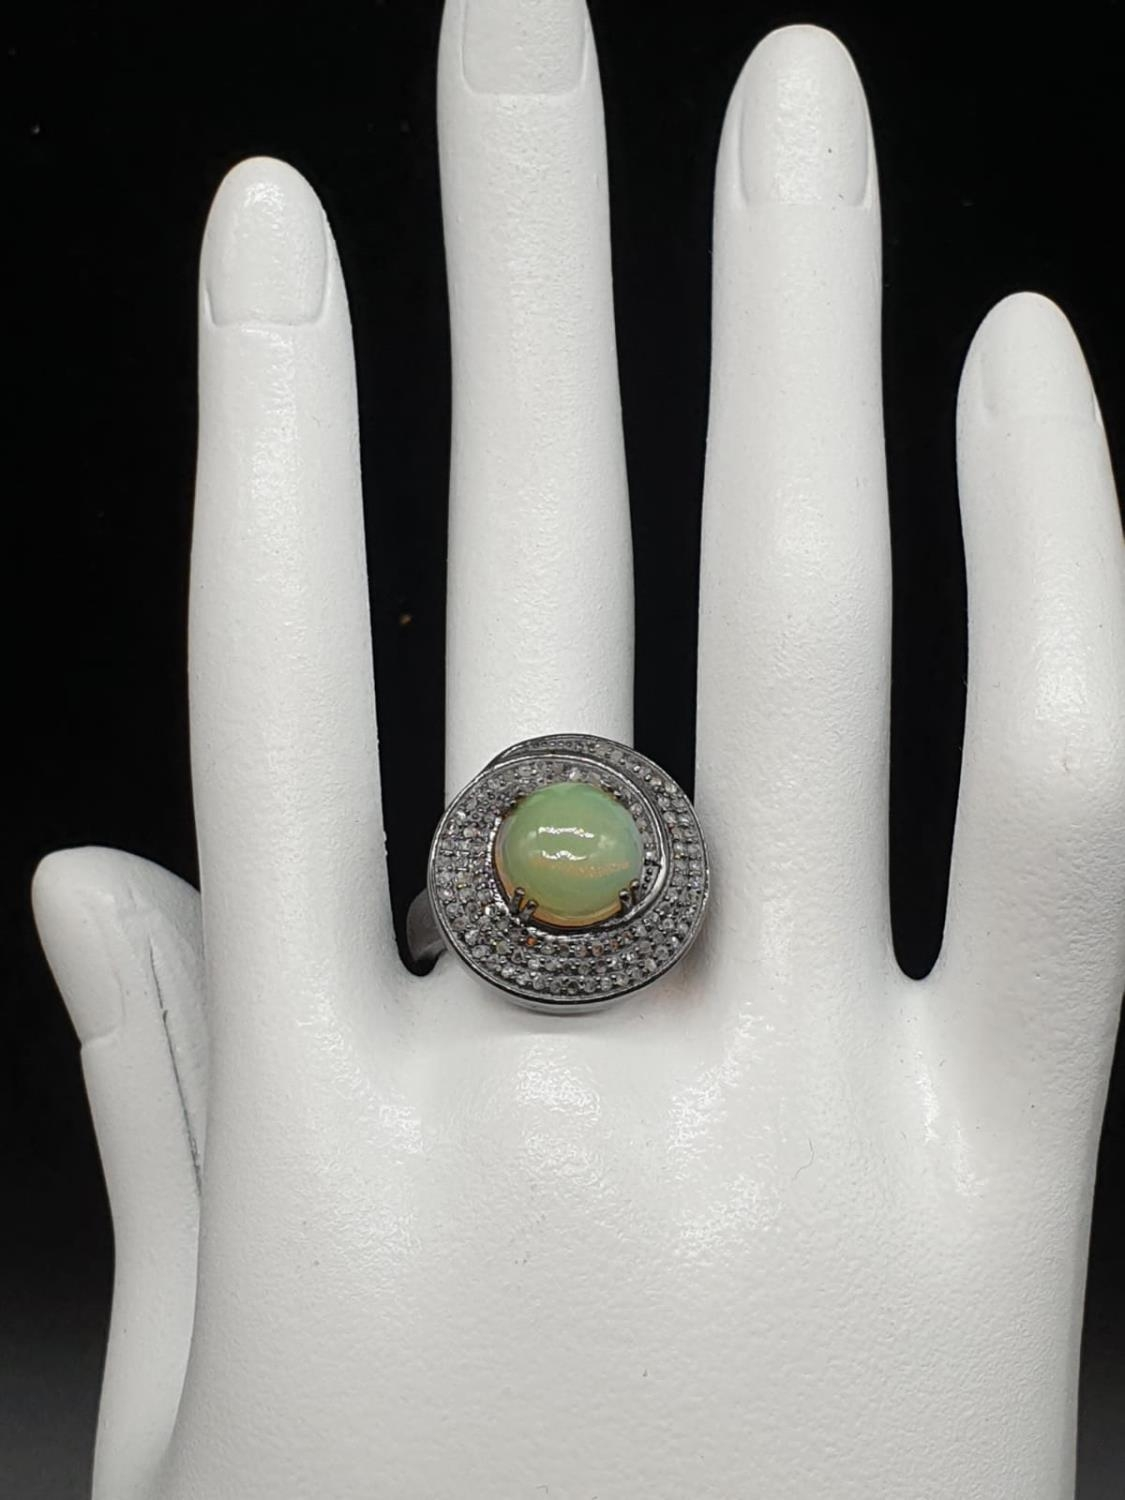 3.50Ct Fire Opal set within a blackened silver ring, with 0.55Ct rose cut diamonds, WEIGHT 6.92G and - Image 5 of 5